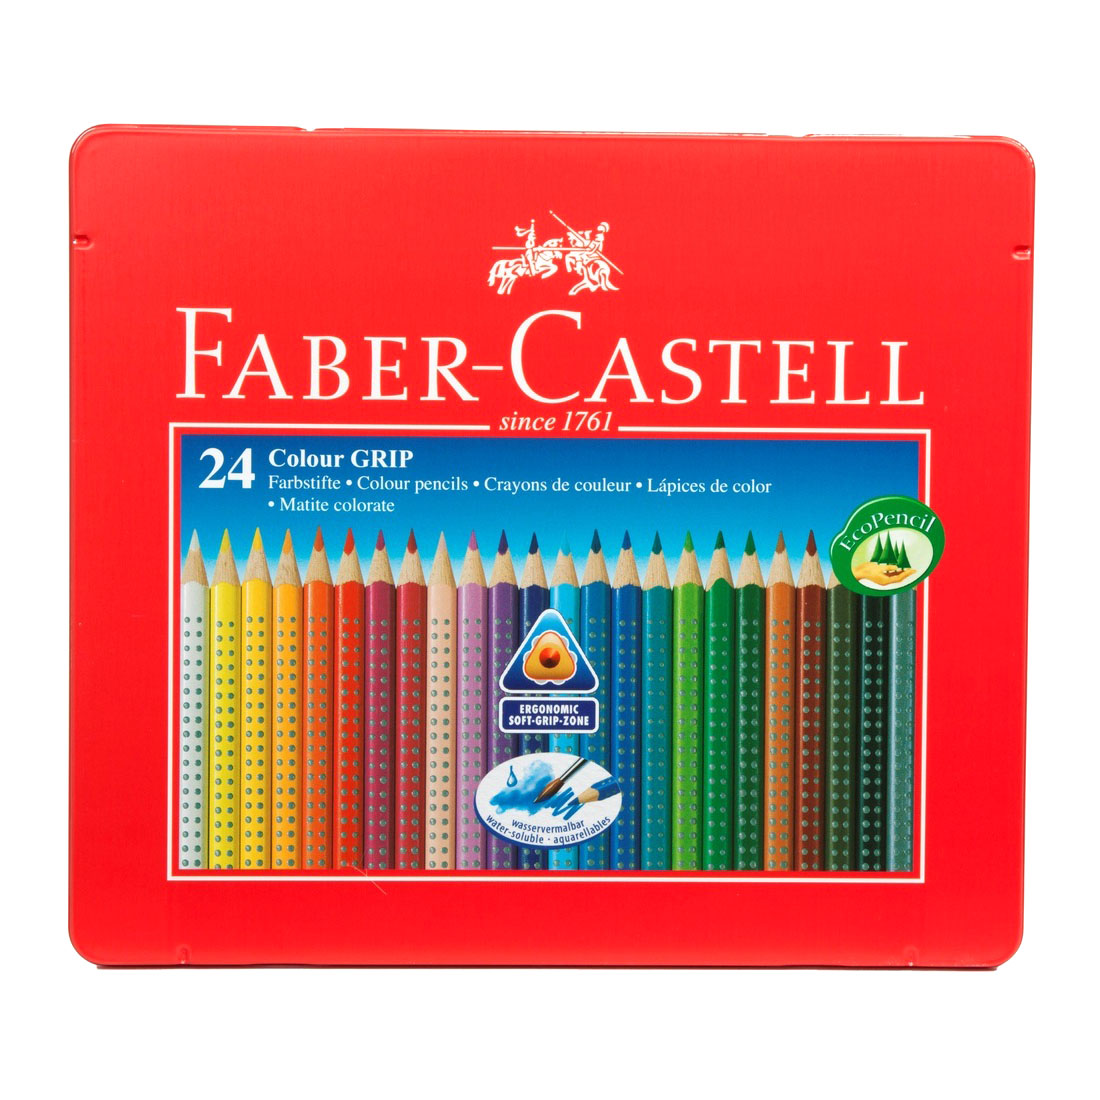 faber castell assorted colour grip colouring pencils water soluble pack of 24 ebay. Black Bedroom Furniture Sets. Home Design Ideas